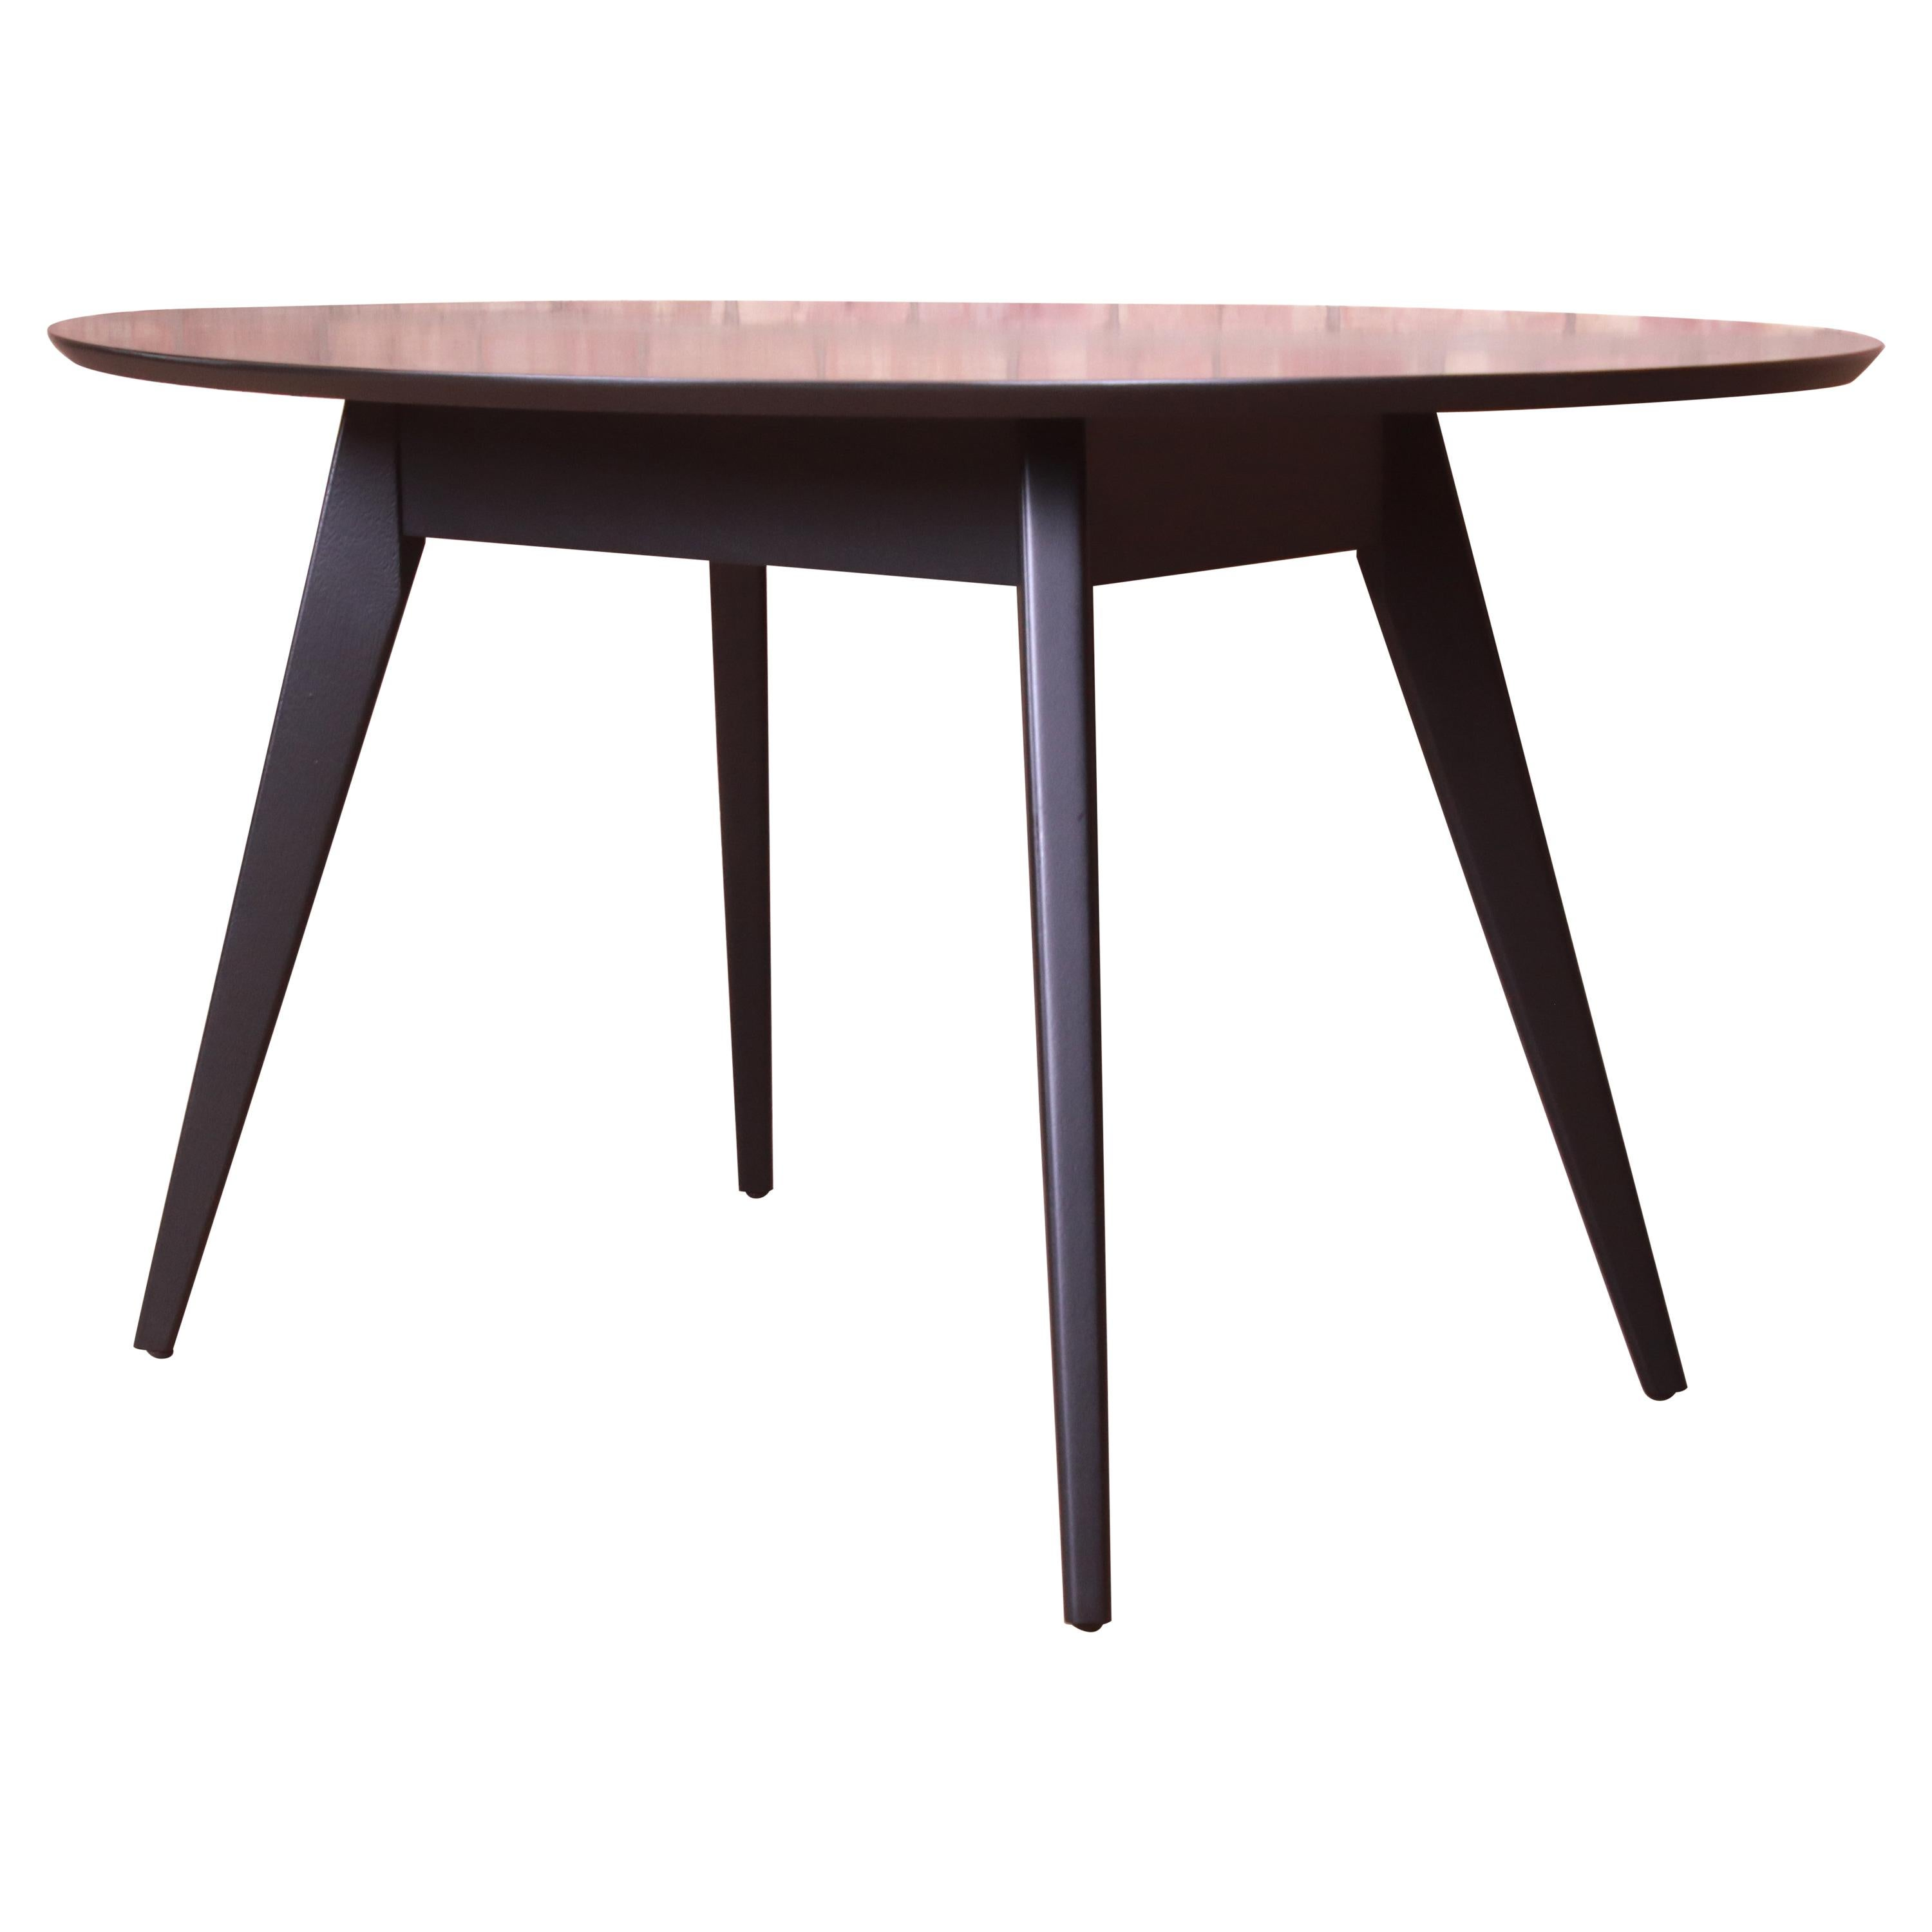 Jens Risom for Knoll Black Lacquered Dining or Game Table, Newly Refinished